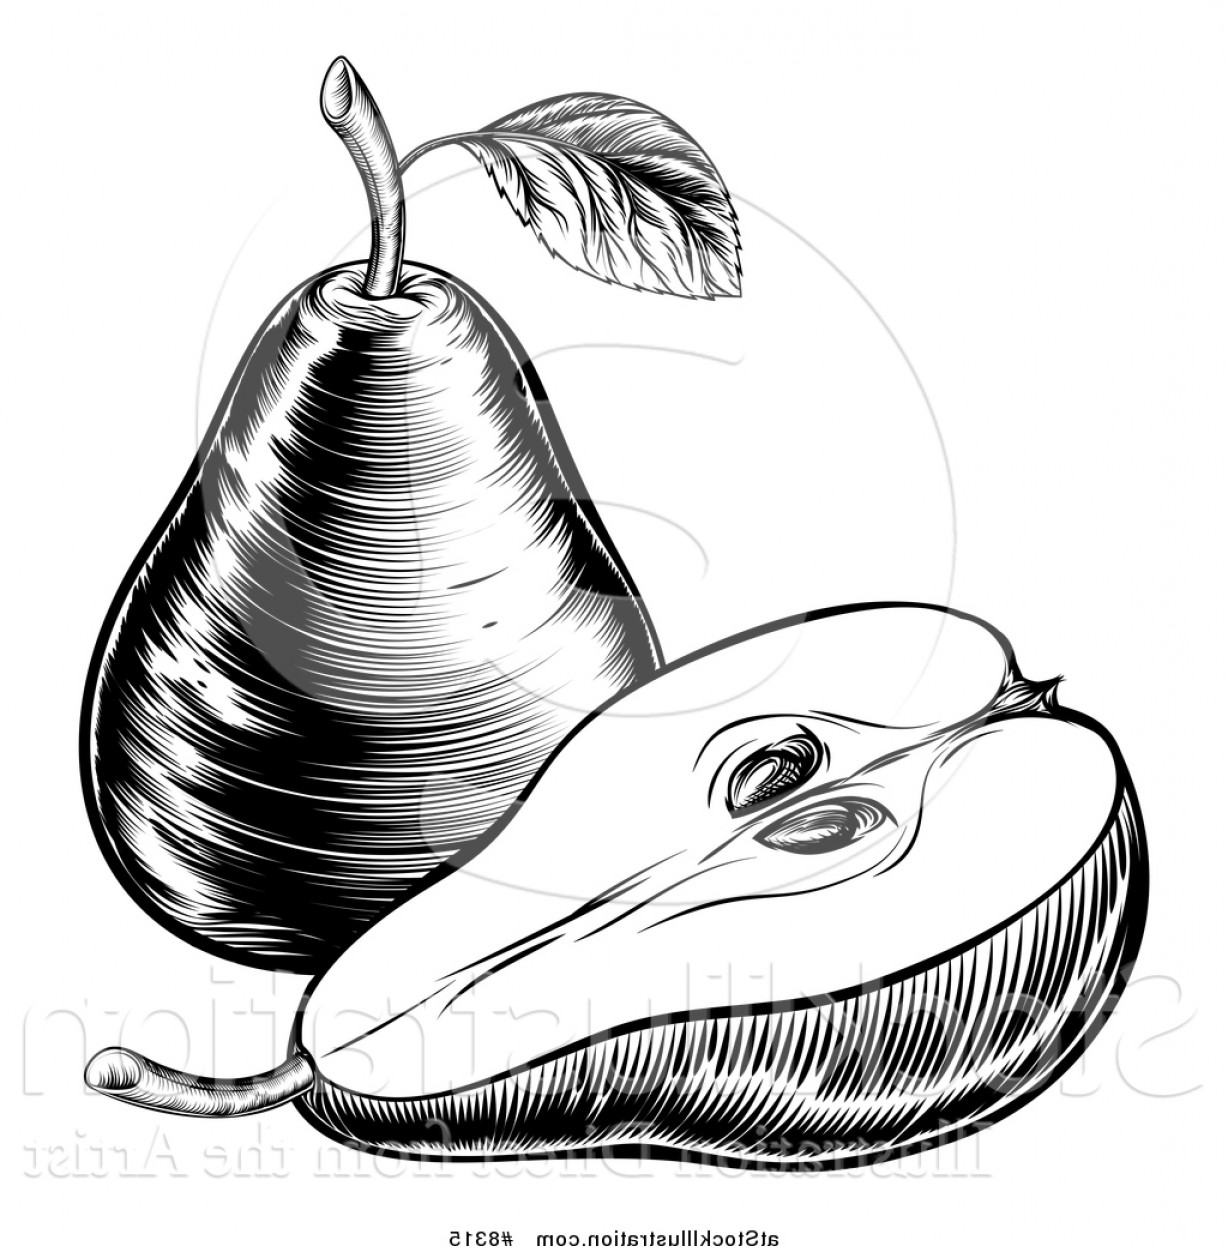 Free black & white clipart of a pear core. Vector illustration and vintage